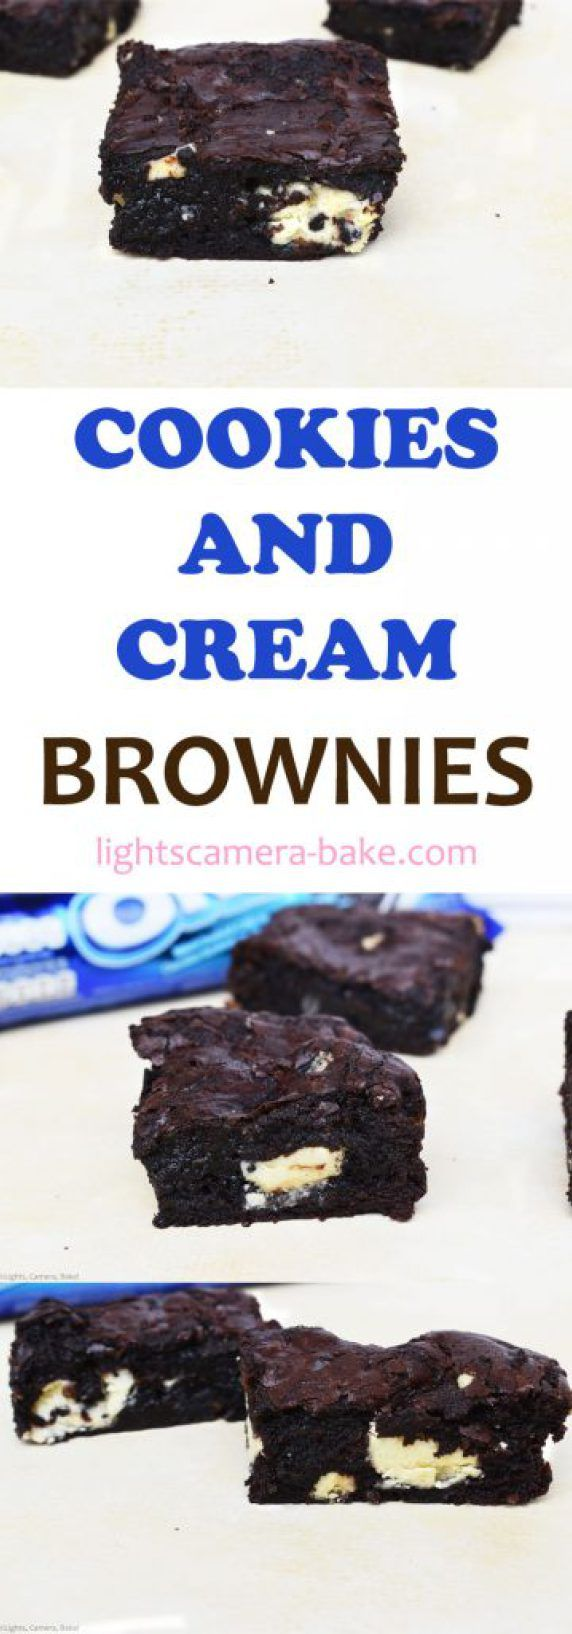 Cookies and Cream Brownies are a rich, dark and fudgy brownie with crushed Oreos and cookies and cream chocolate scattered throughout. Super fudgy and packed full of the cookies and cream flavour.